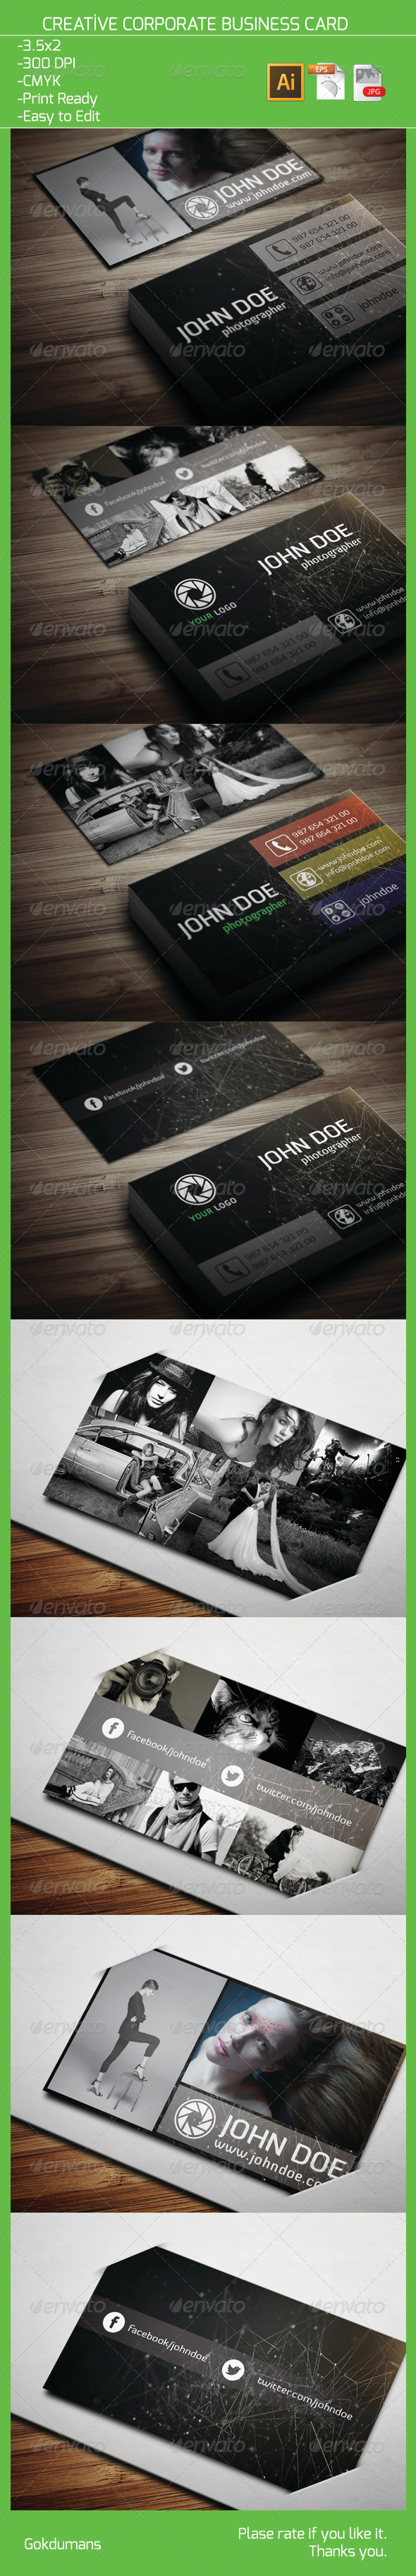 GraphicRiver Creative Corporate Business Card 12 5986933